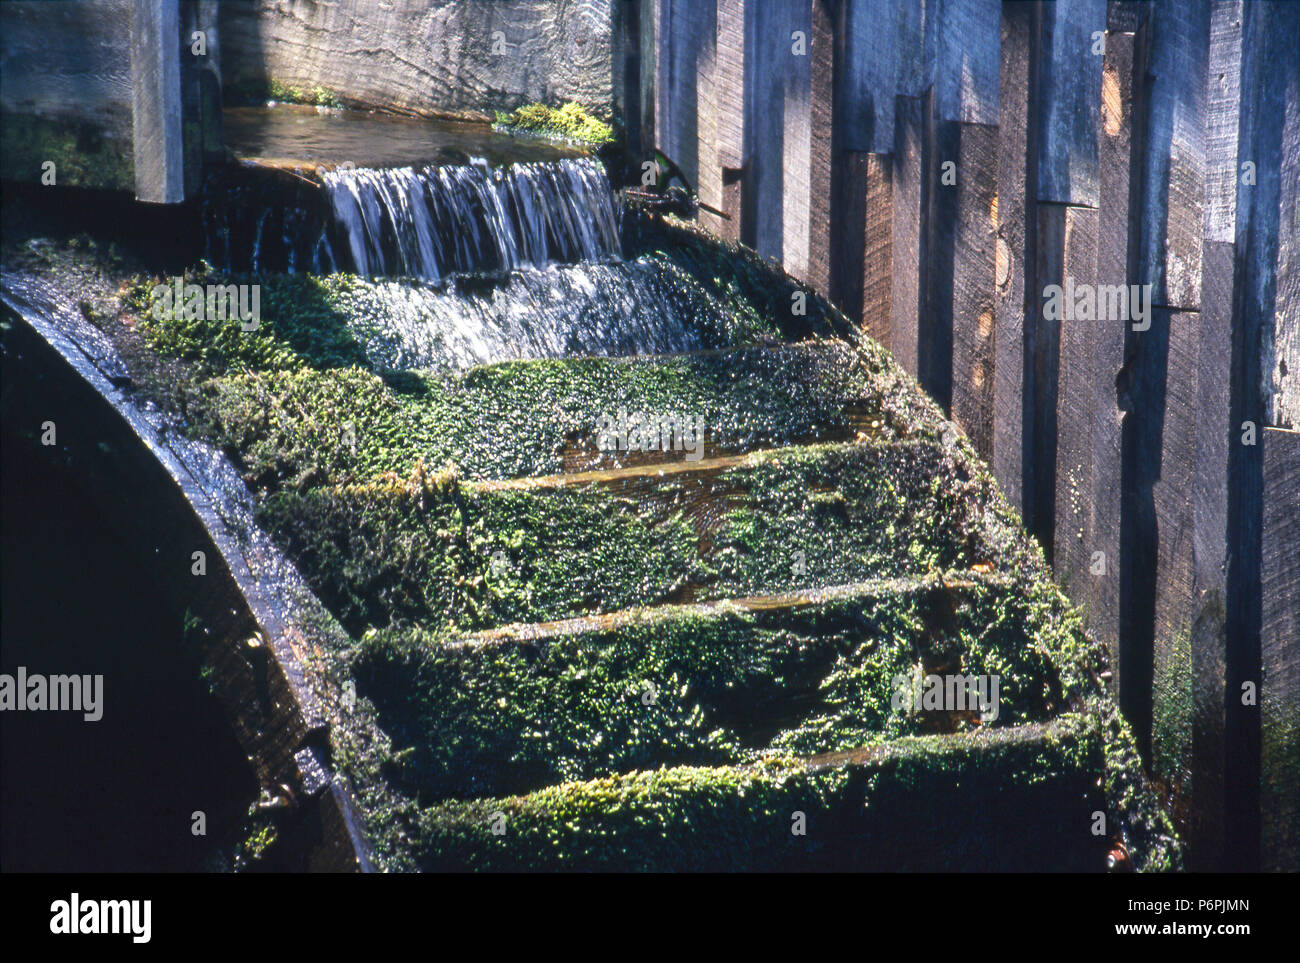 Water wheel of pioneer corn mill in Cades Cove, Smoky Mountains National Park, Tennessee. Photograph - Stock Image